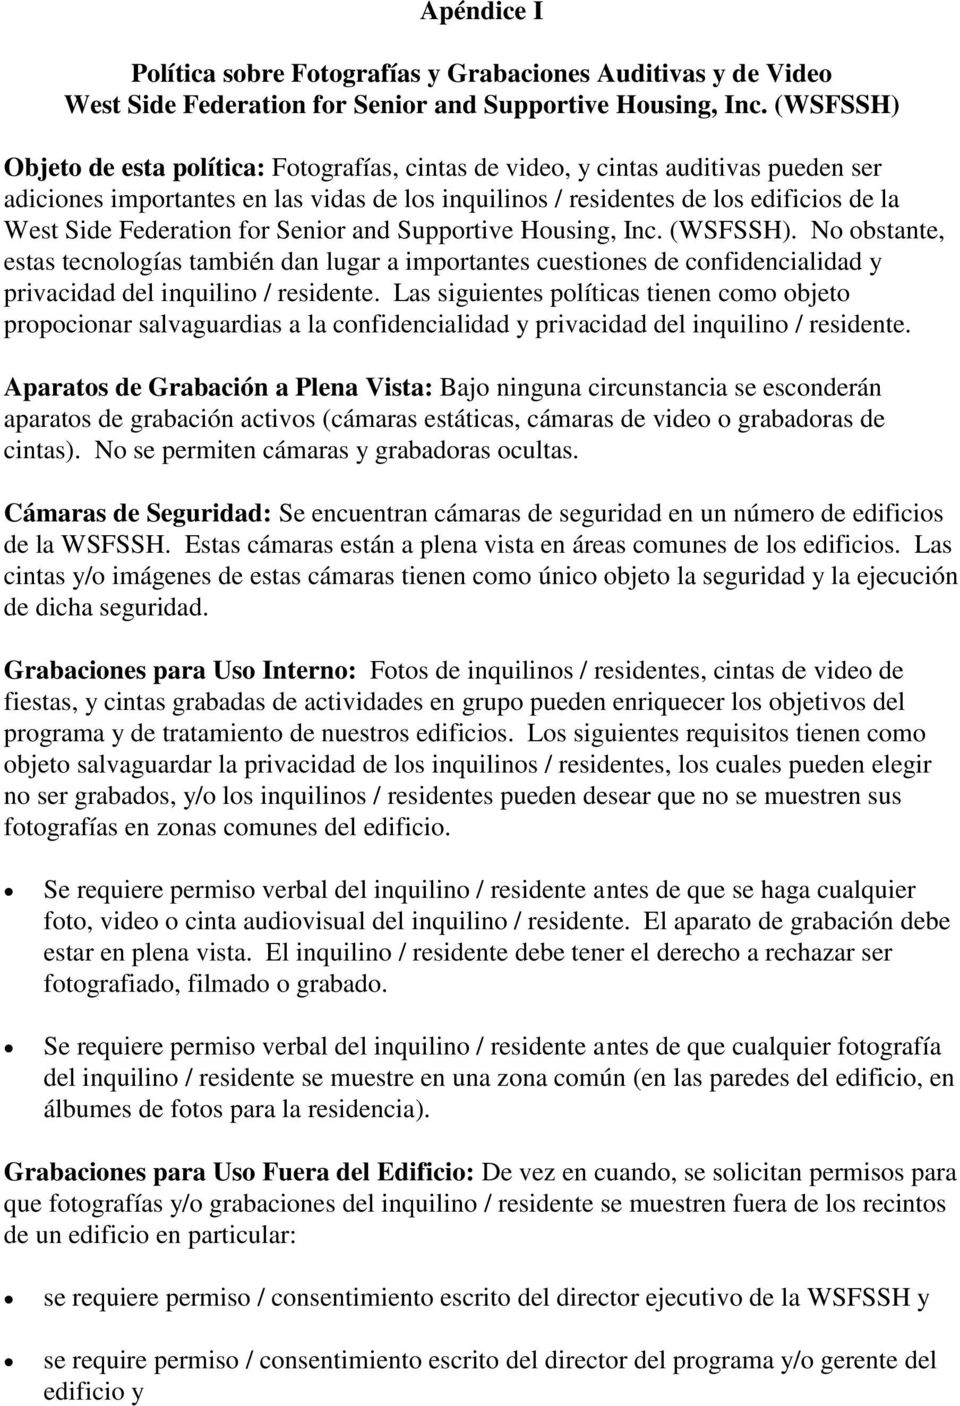 Federation for Senior and Supportive Housing, Inc. (WSFSSH). No obstante, estas tecnologías también dan lugar a importantes cuestiones de confidencialidad y privacidad del inquilino / residente.